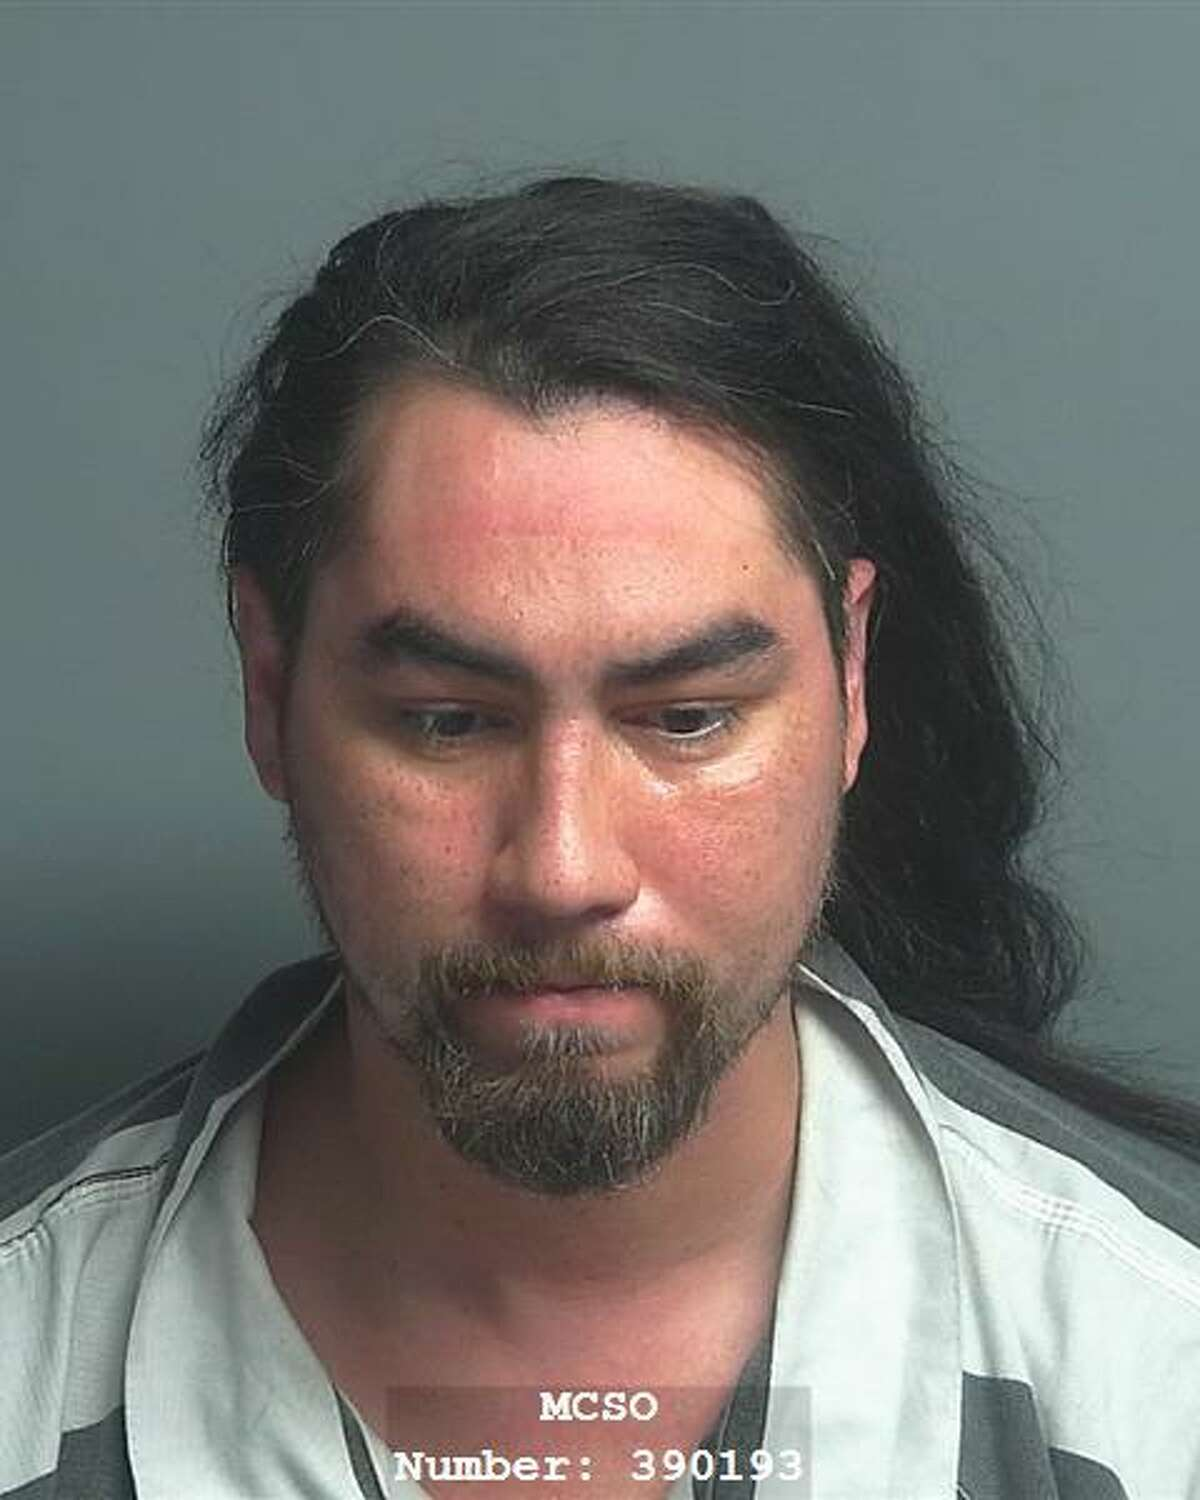 Anthony Dutro Maldonado, 35, is charged with unlawful restraint, less than 17 years old, a state jail felony.